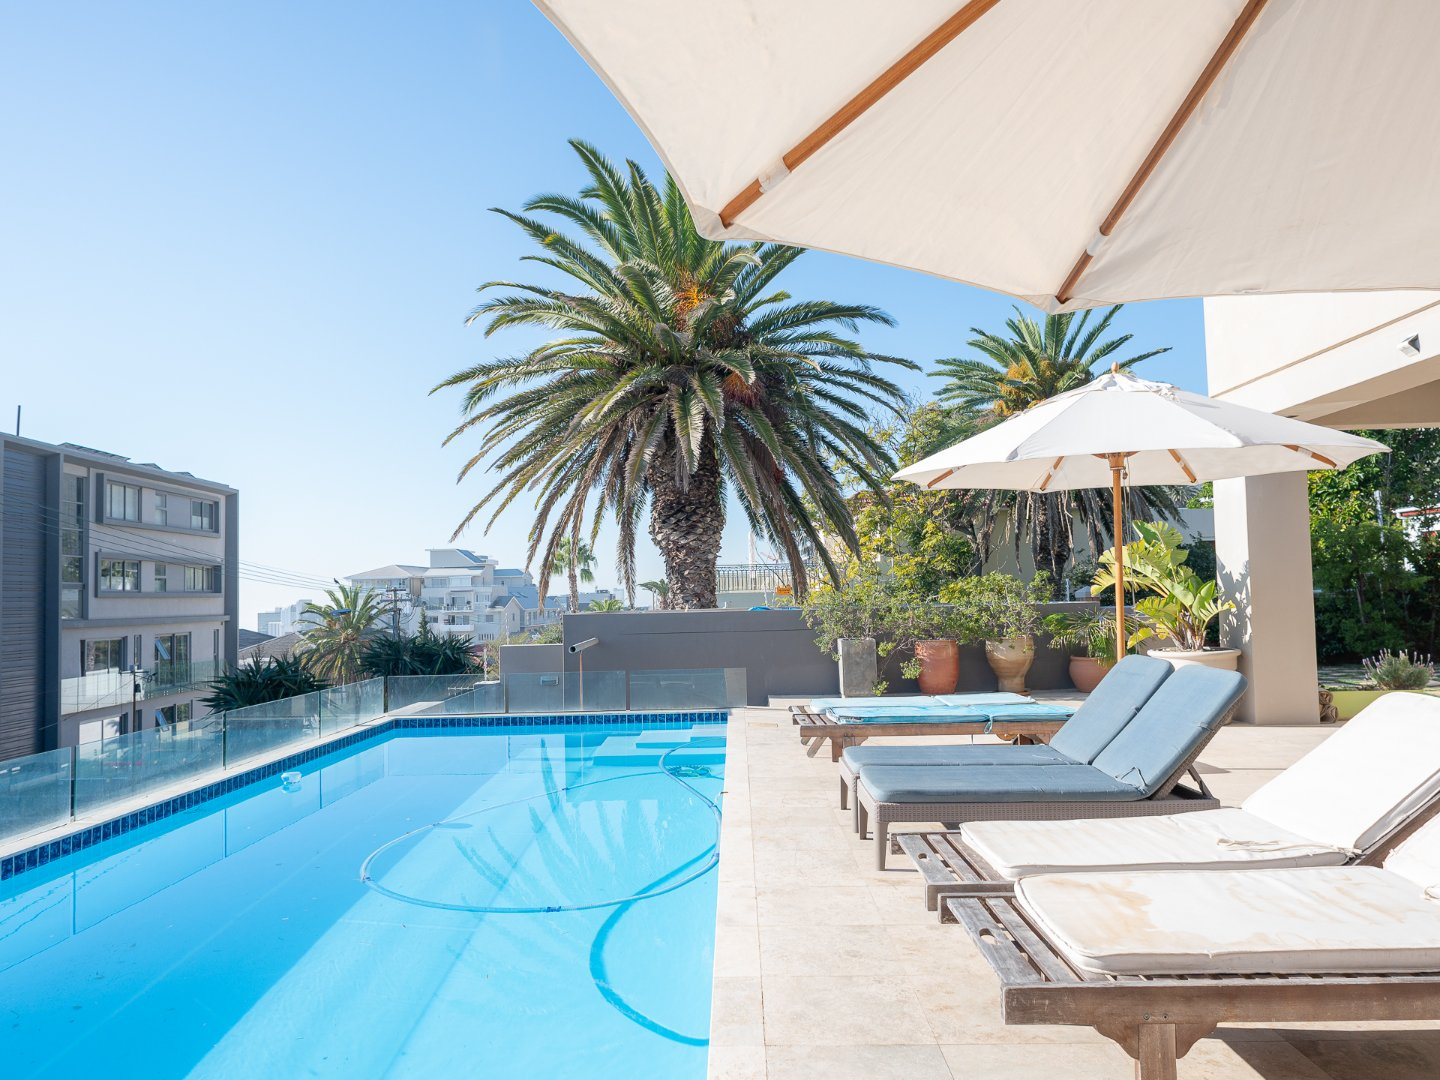 6 Bedroom Apartment For Sale in Bantry Bay